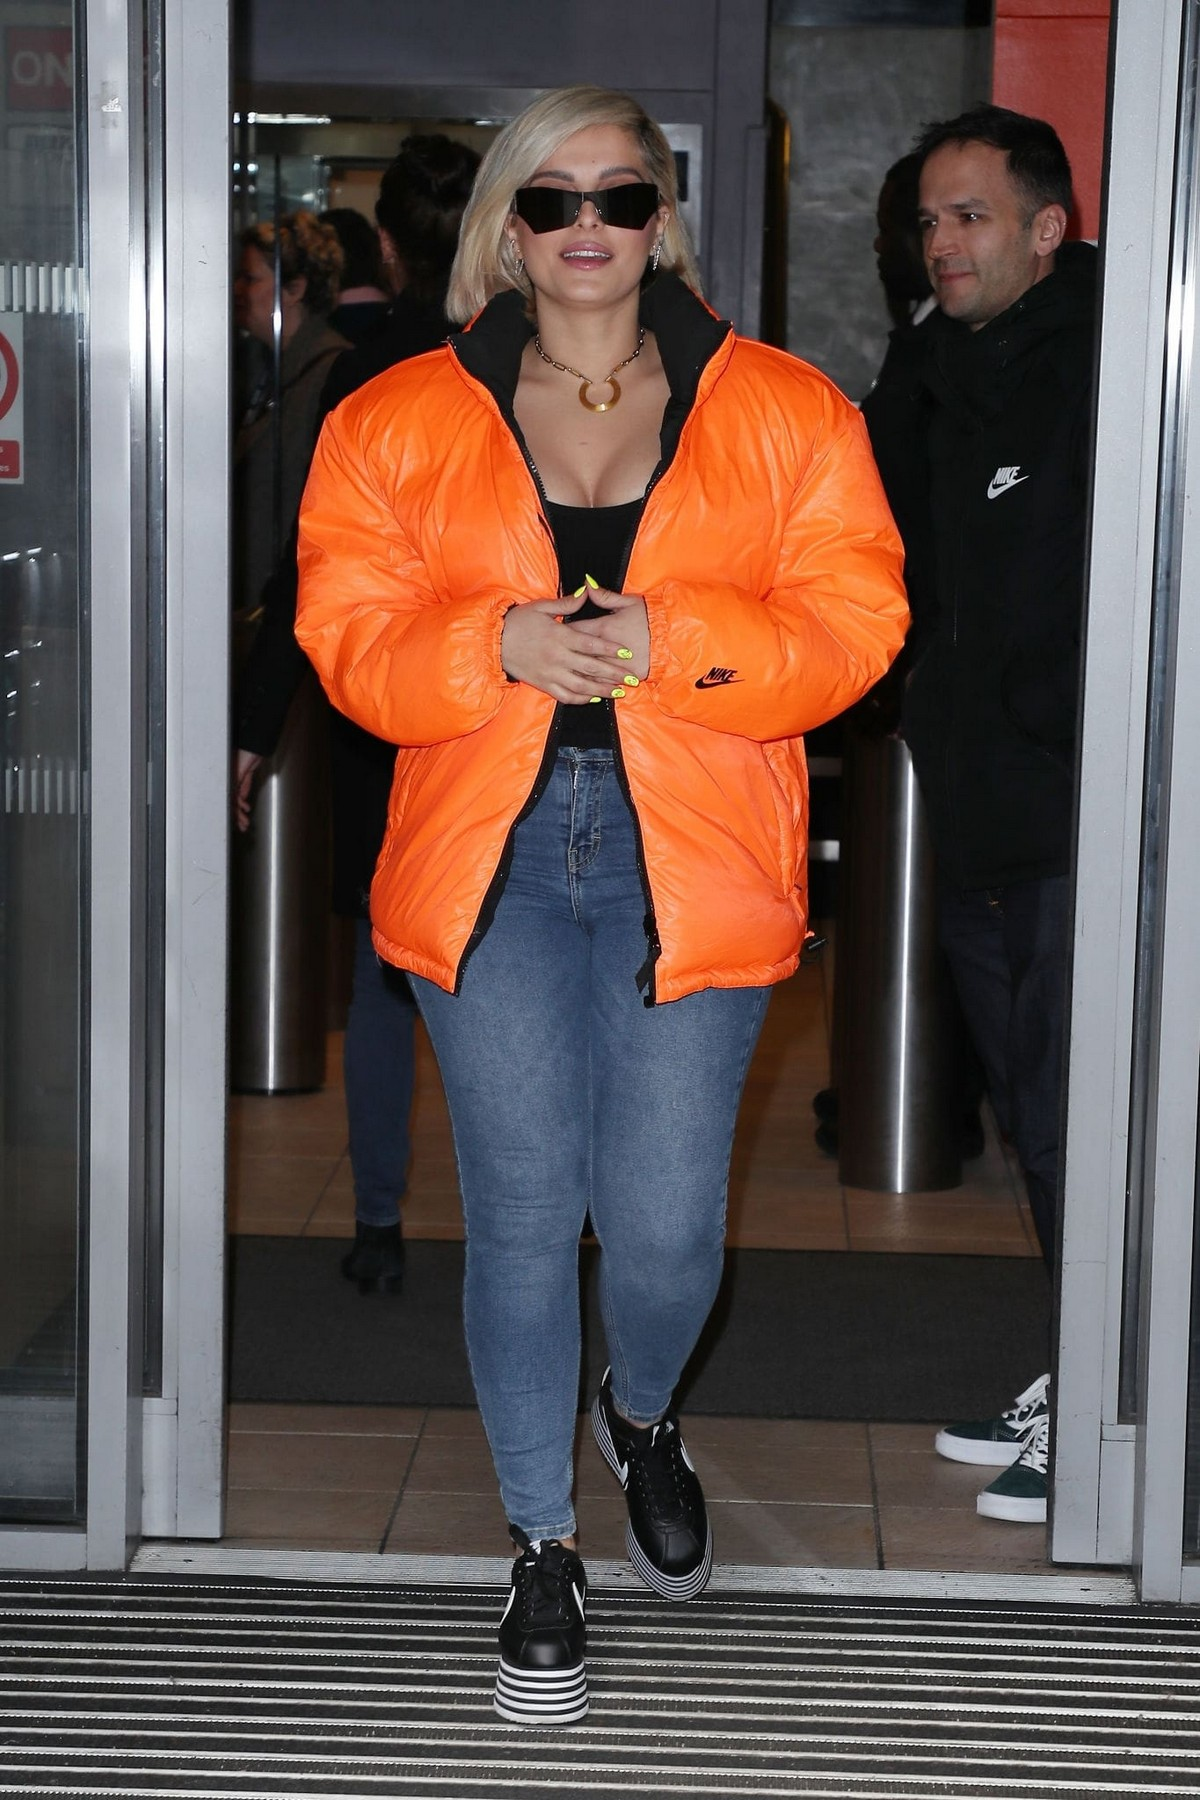 Bebe Rexha in Orange Jacket with Blue Jeans Leaves BBC Radio Studios in London 1